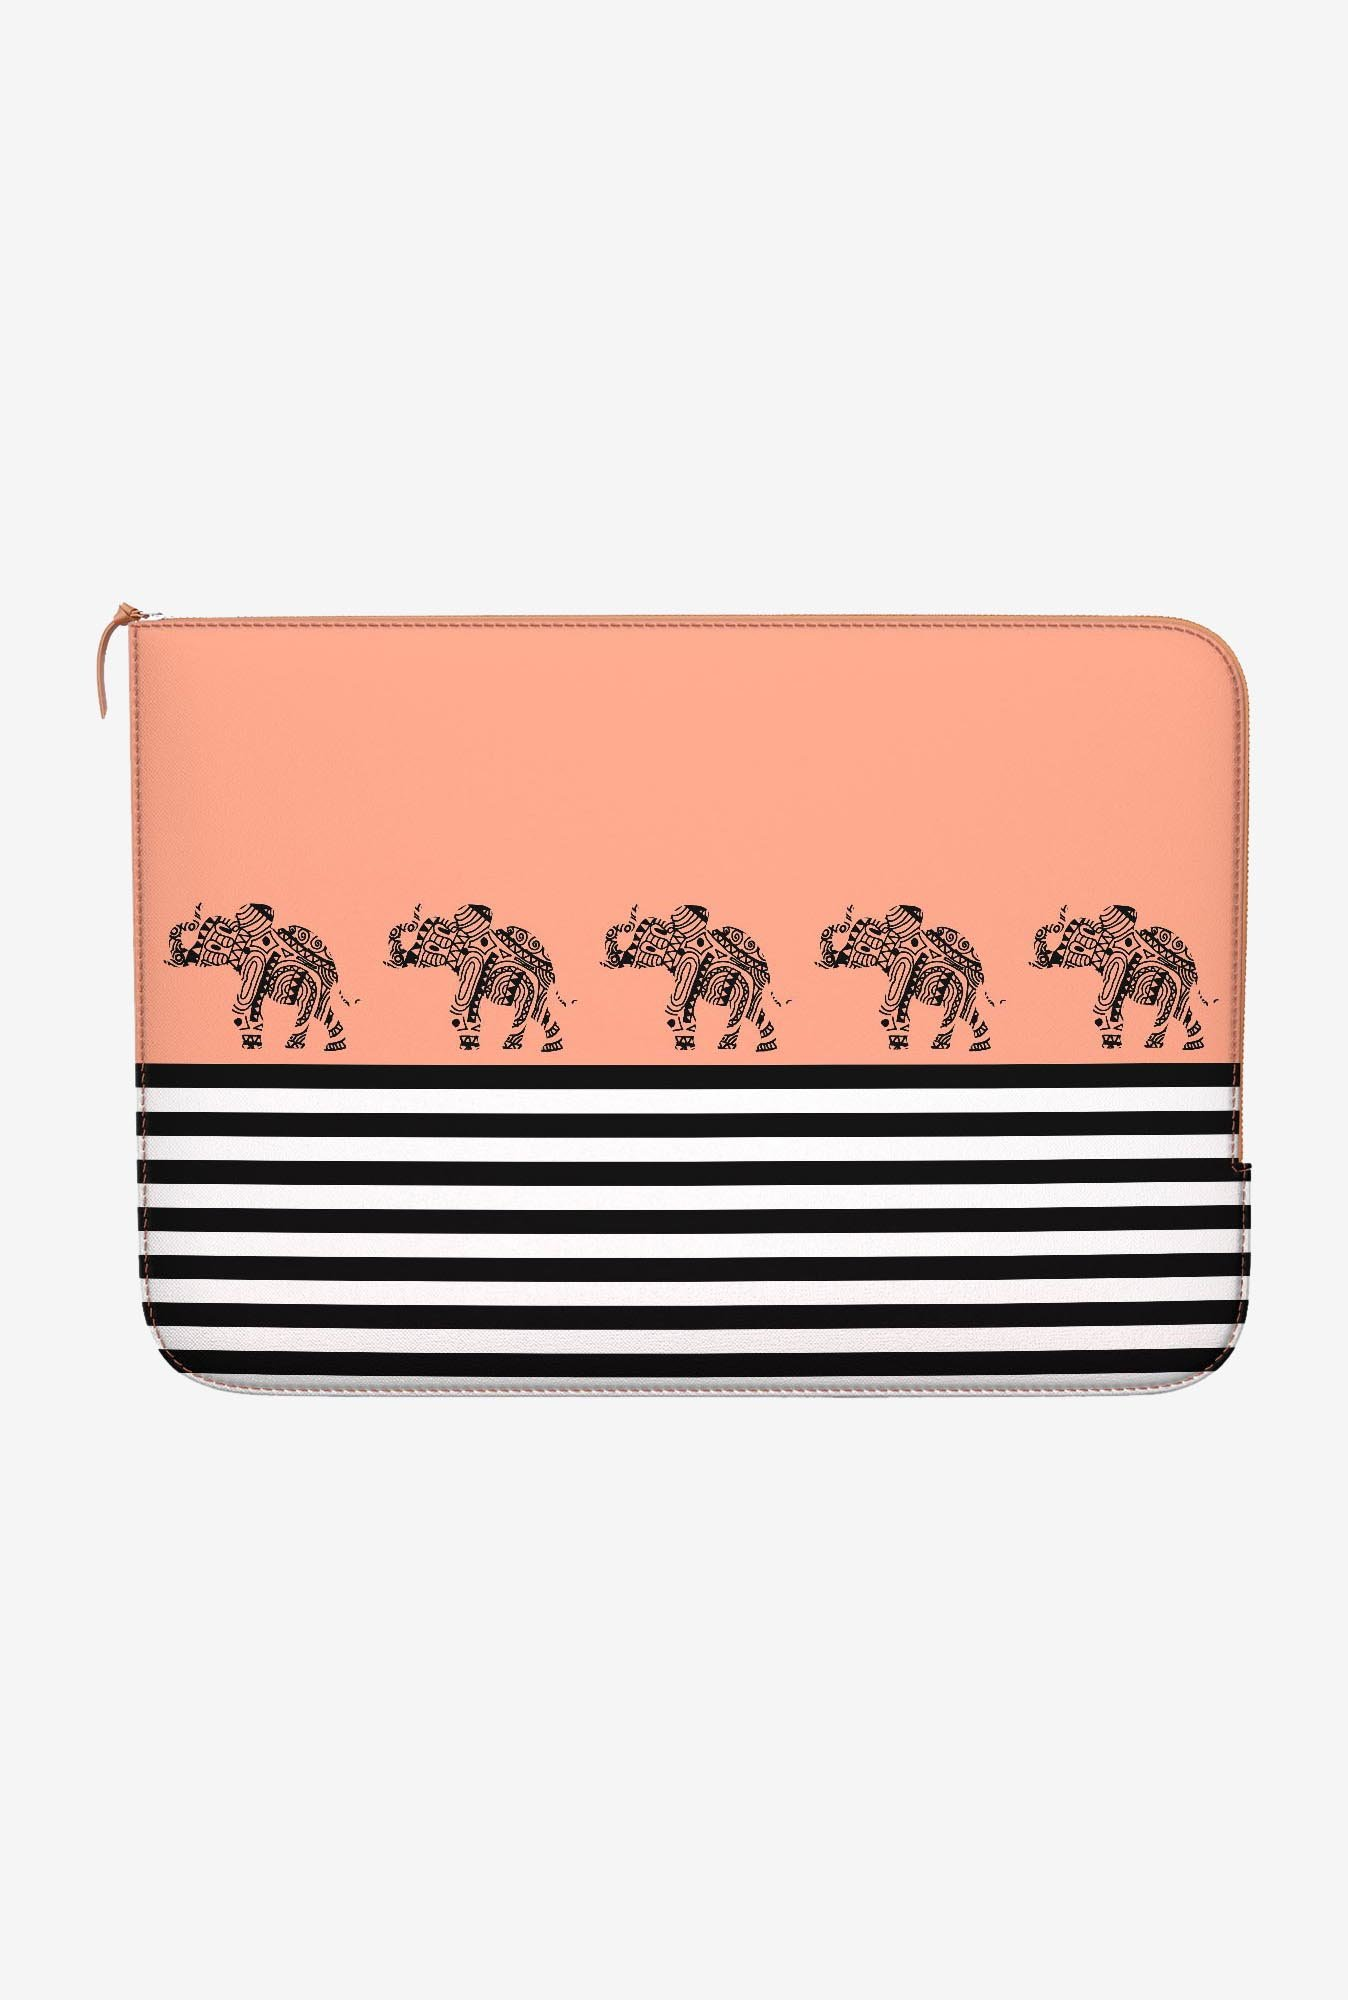 DailyObjects Stripes Coral MacBook 12 Zippered Sleeve